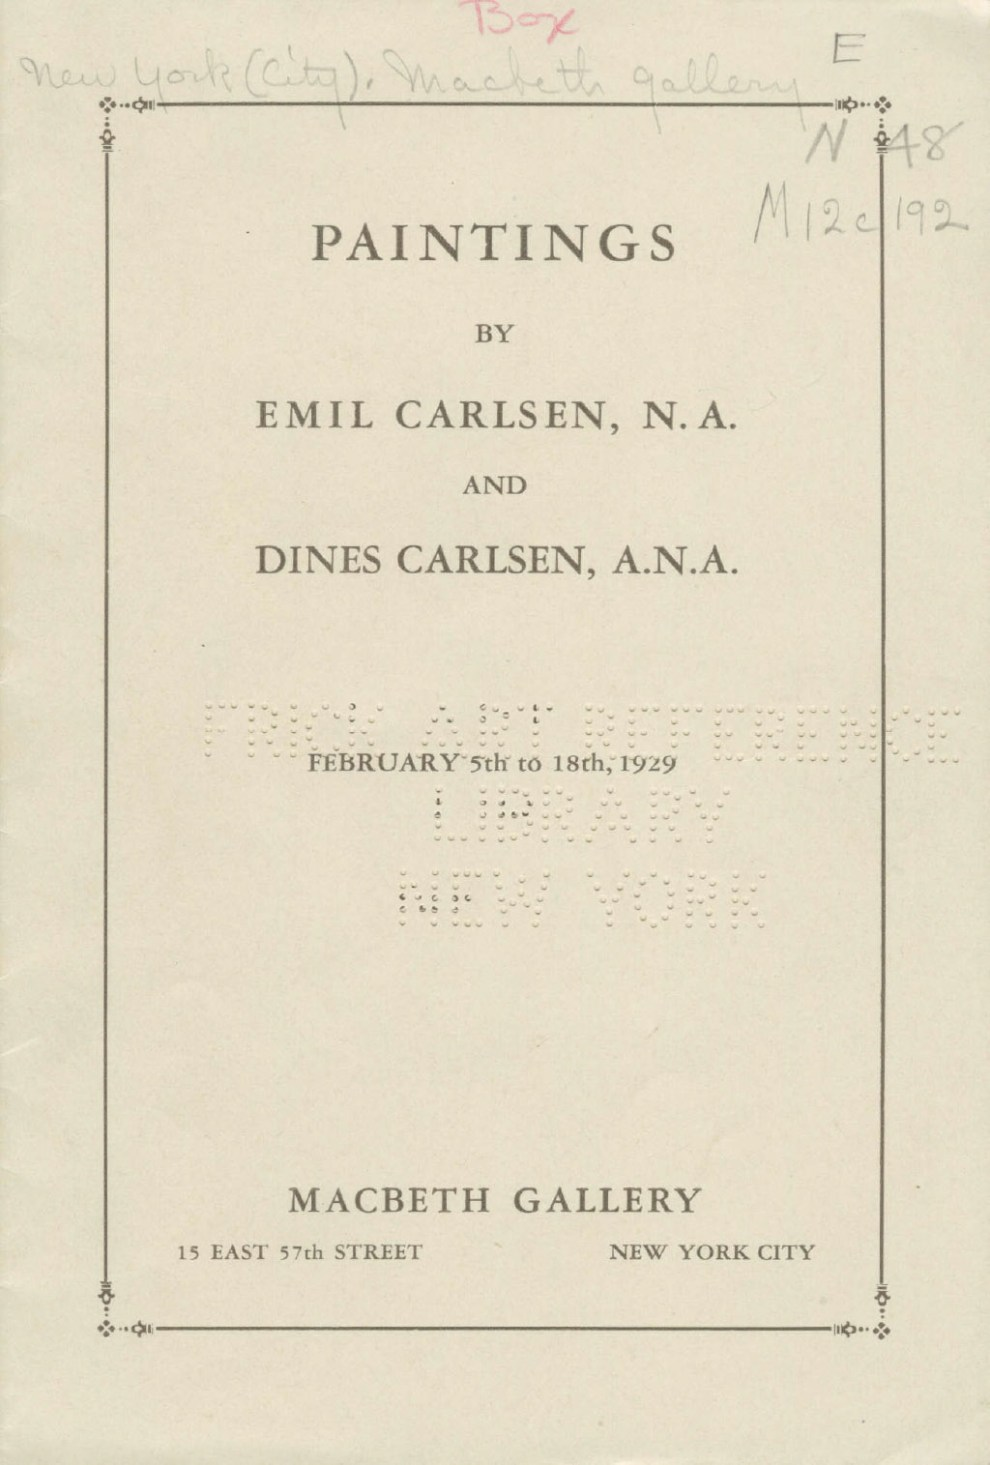 Paintings by Emil Carlsen and Dines Carlsen